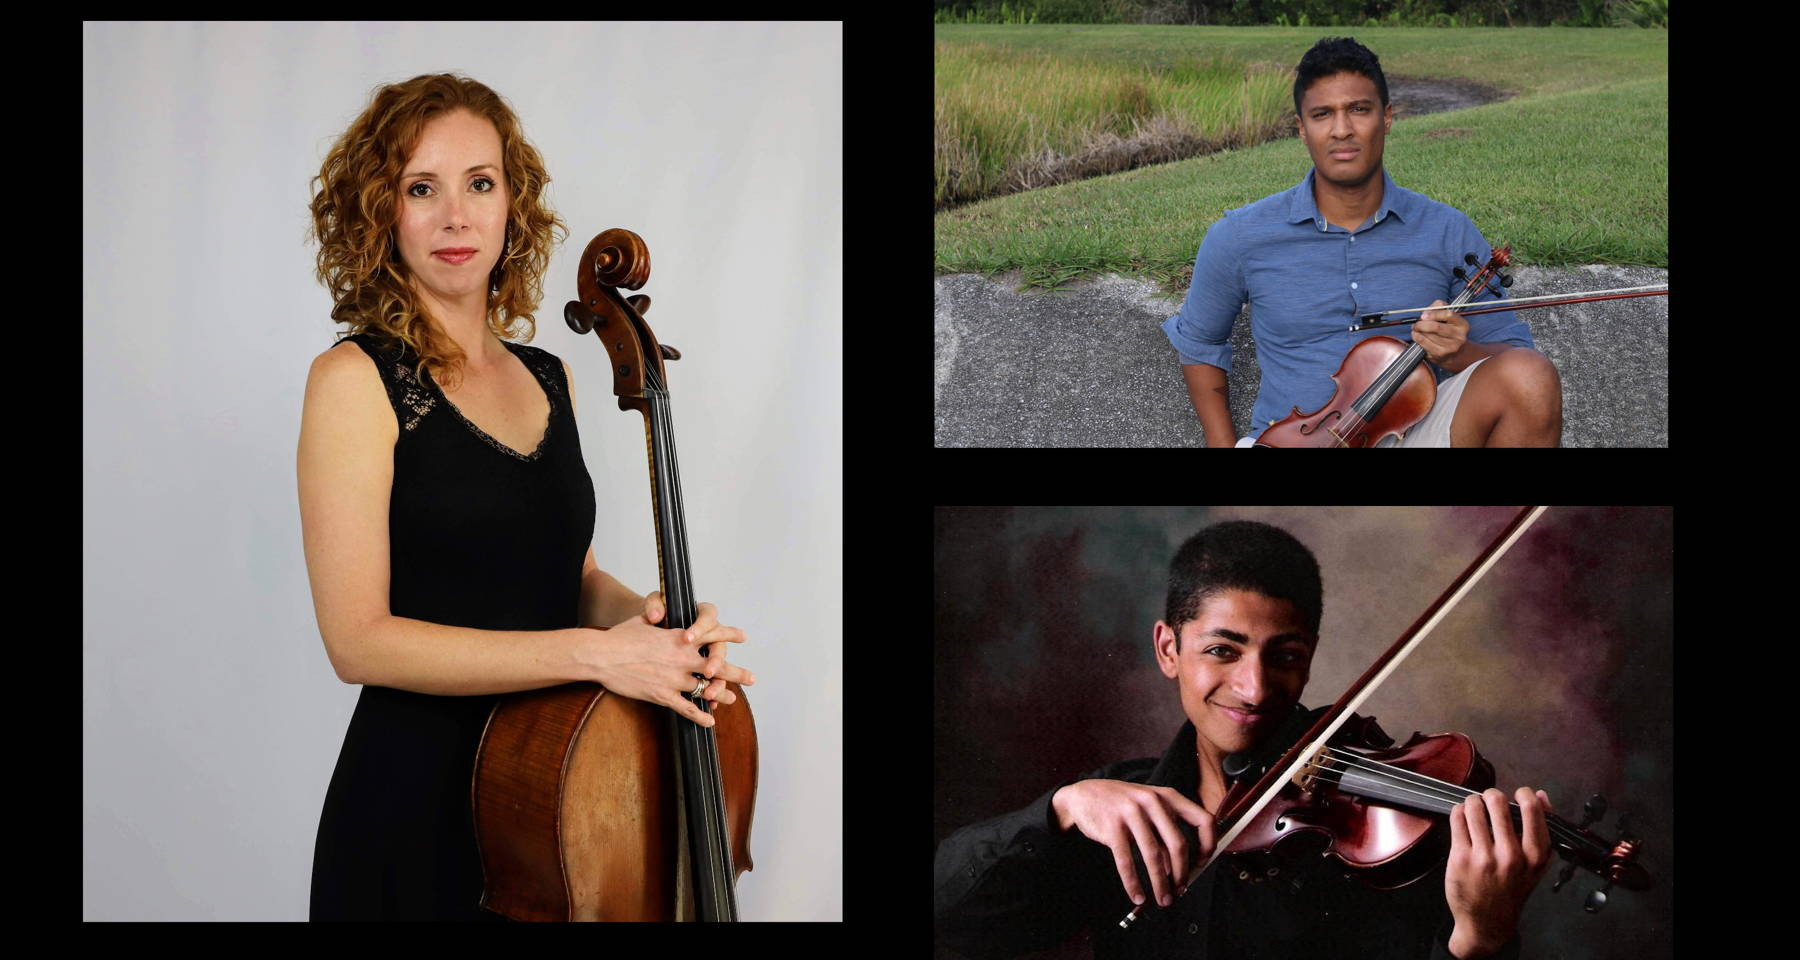 Equinoxes and Solstices: Music For Two Violins And Cello With Kyle Walcott And Friends